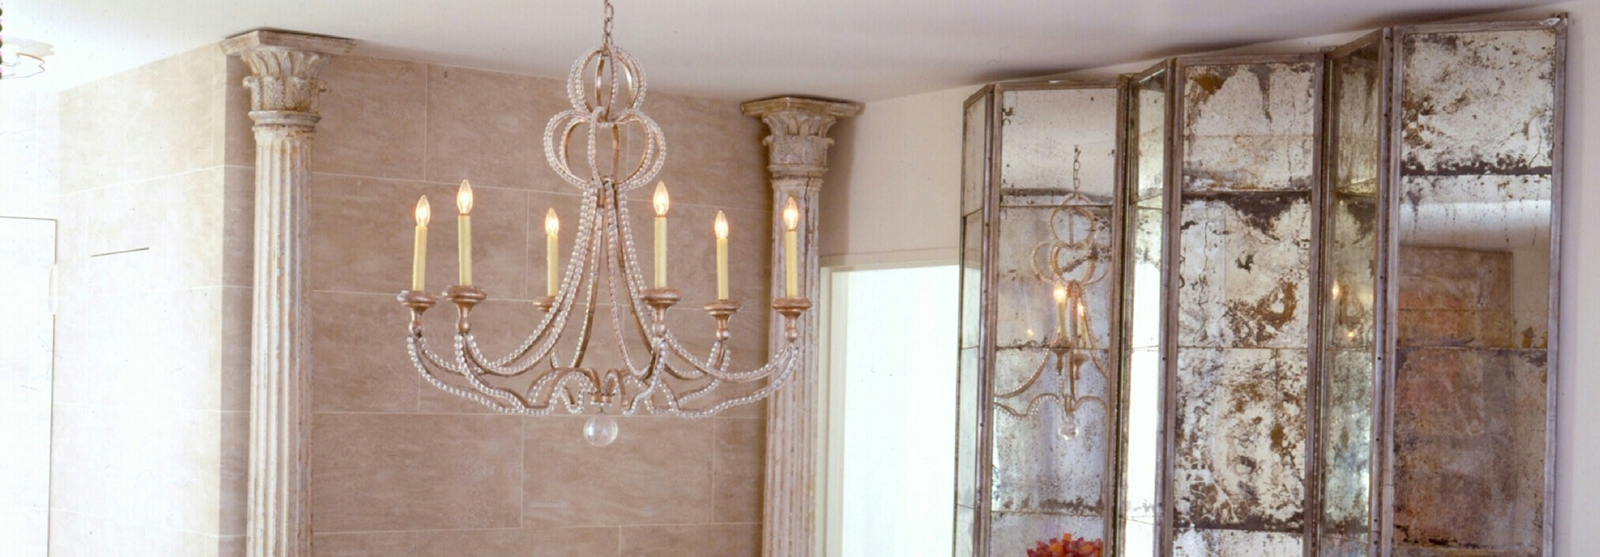 Famous Antique Mirror Chandelier Intended For Niermann Weeks Lighting, Furniture And Accessories (View 6 of 20)